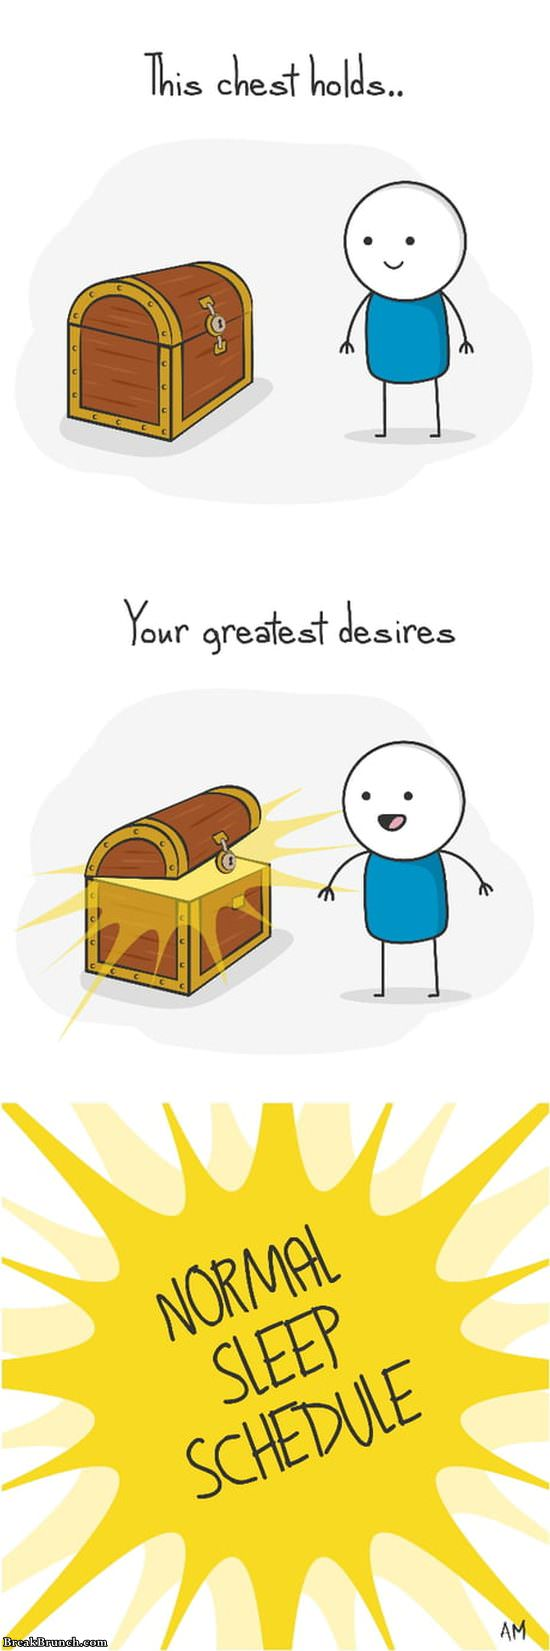 Chest with your greatest desires